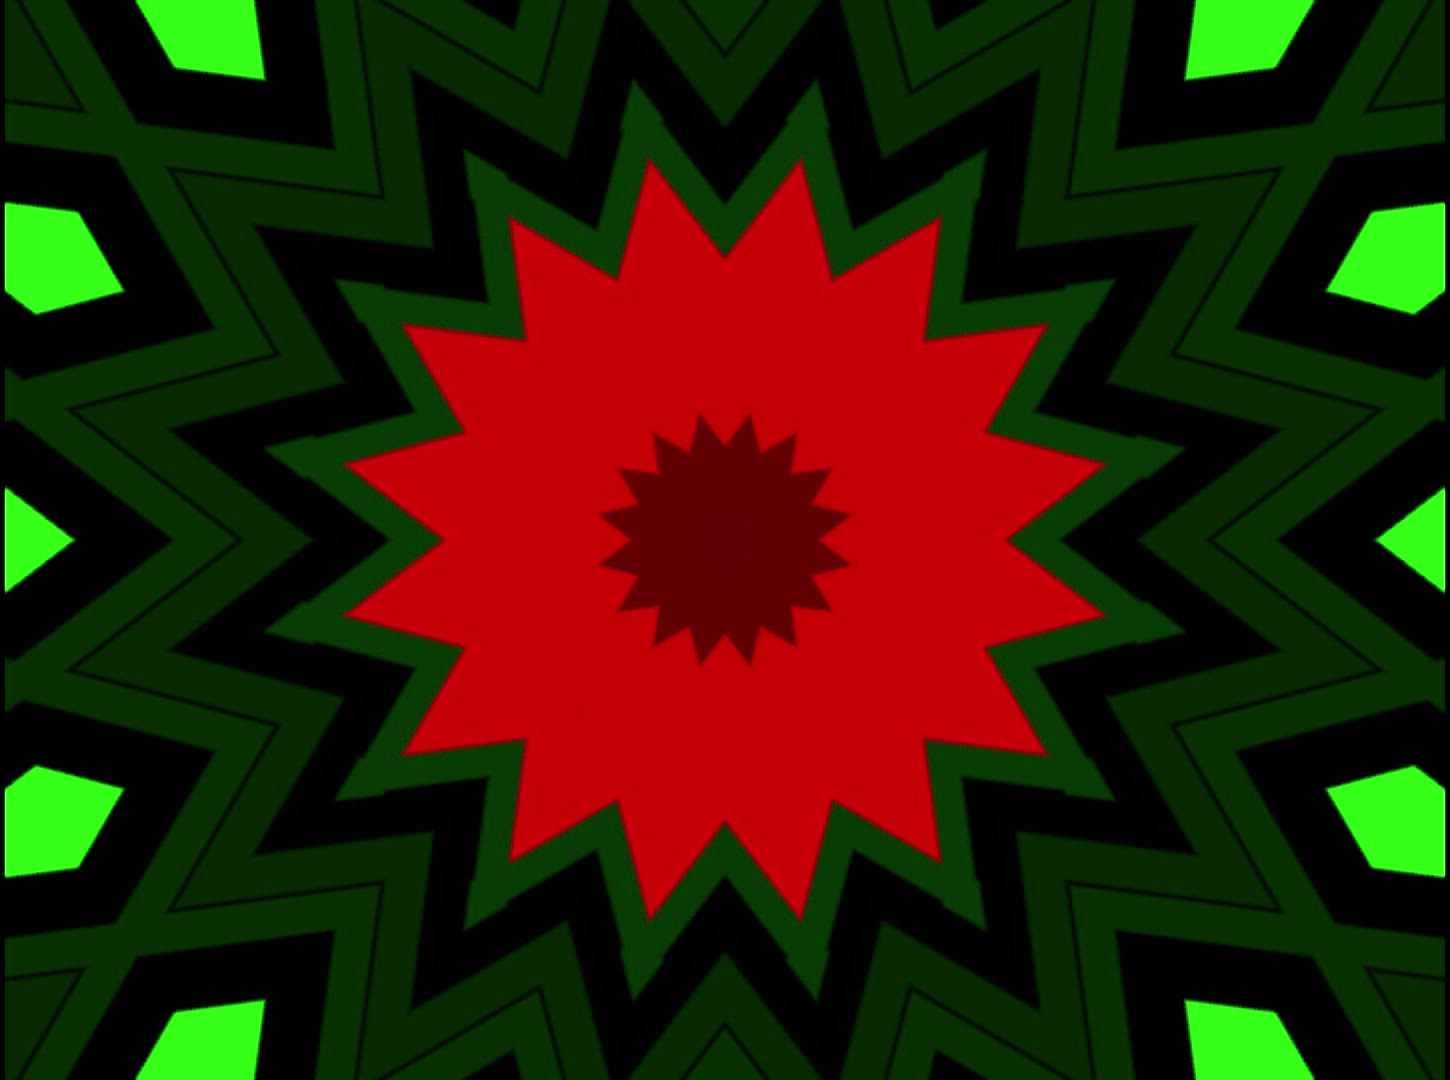 Royalty Free Video VJ Loops: Three Mandalas